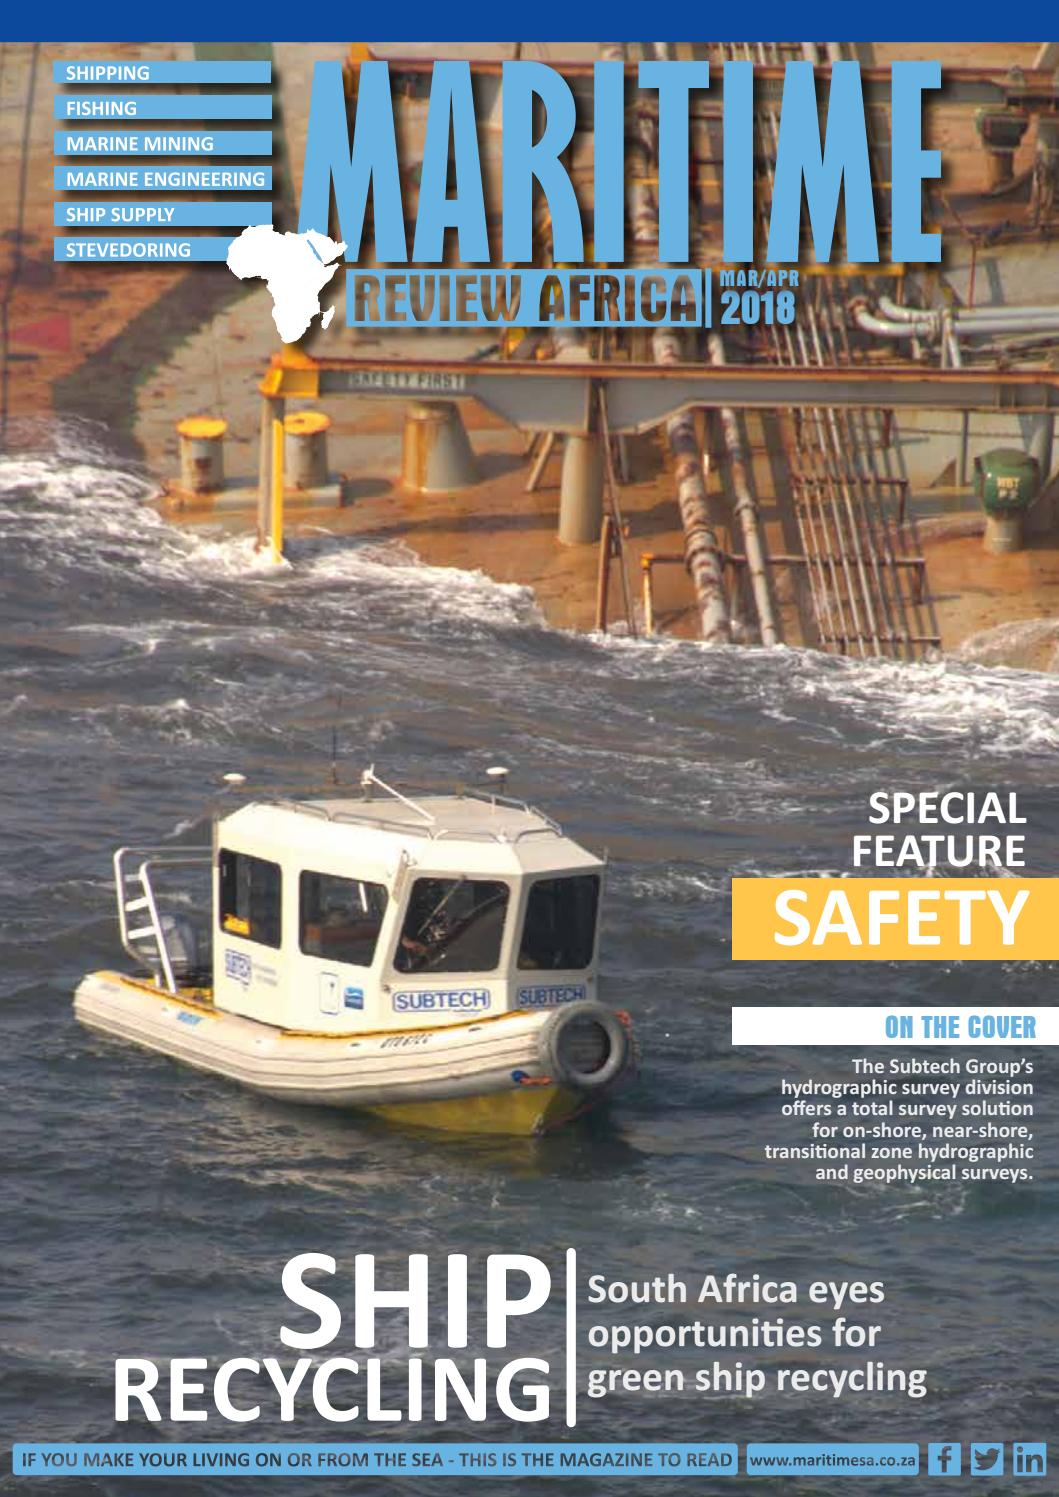 Maritime Review Africa MarchApril 2018 by More Maximum Media - issuu